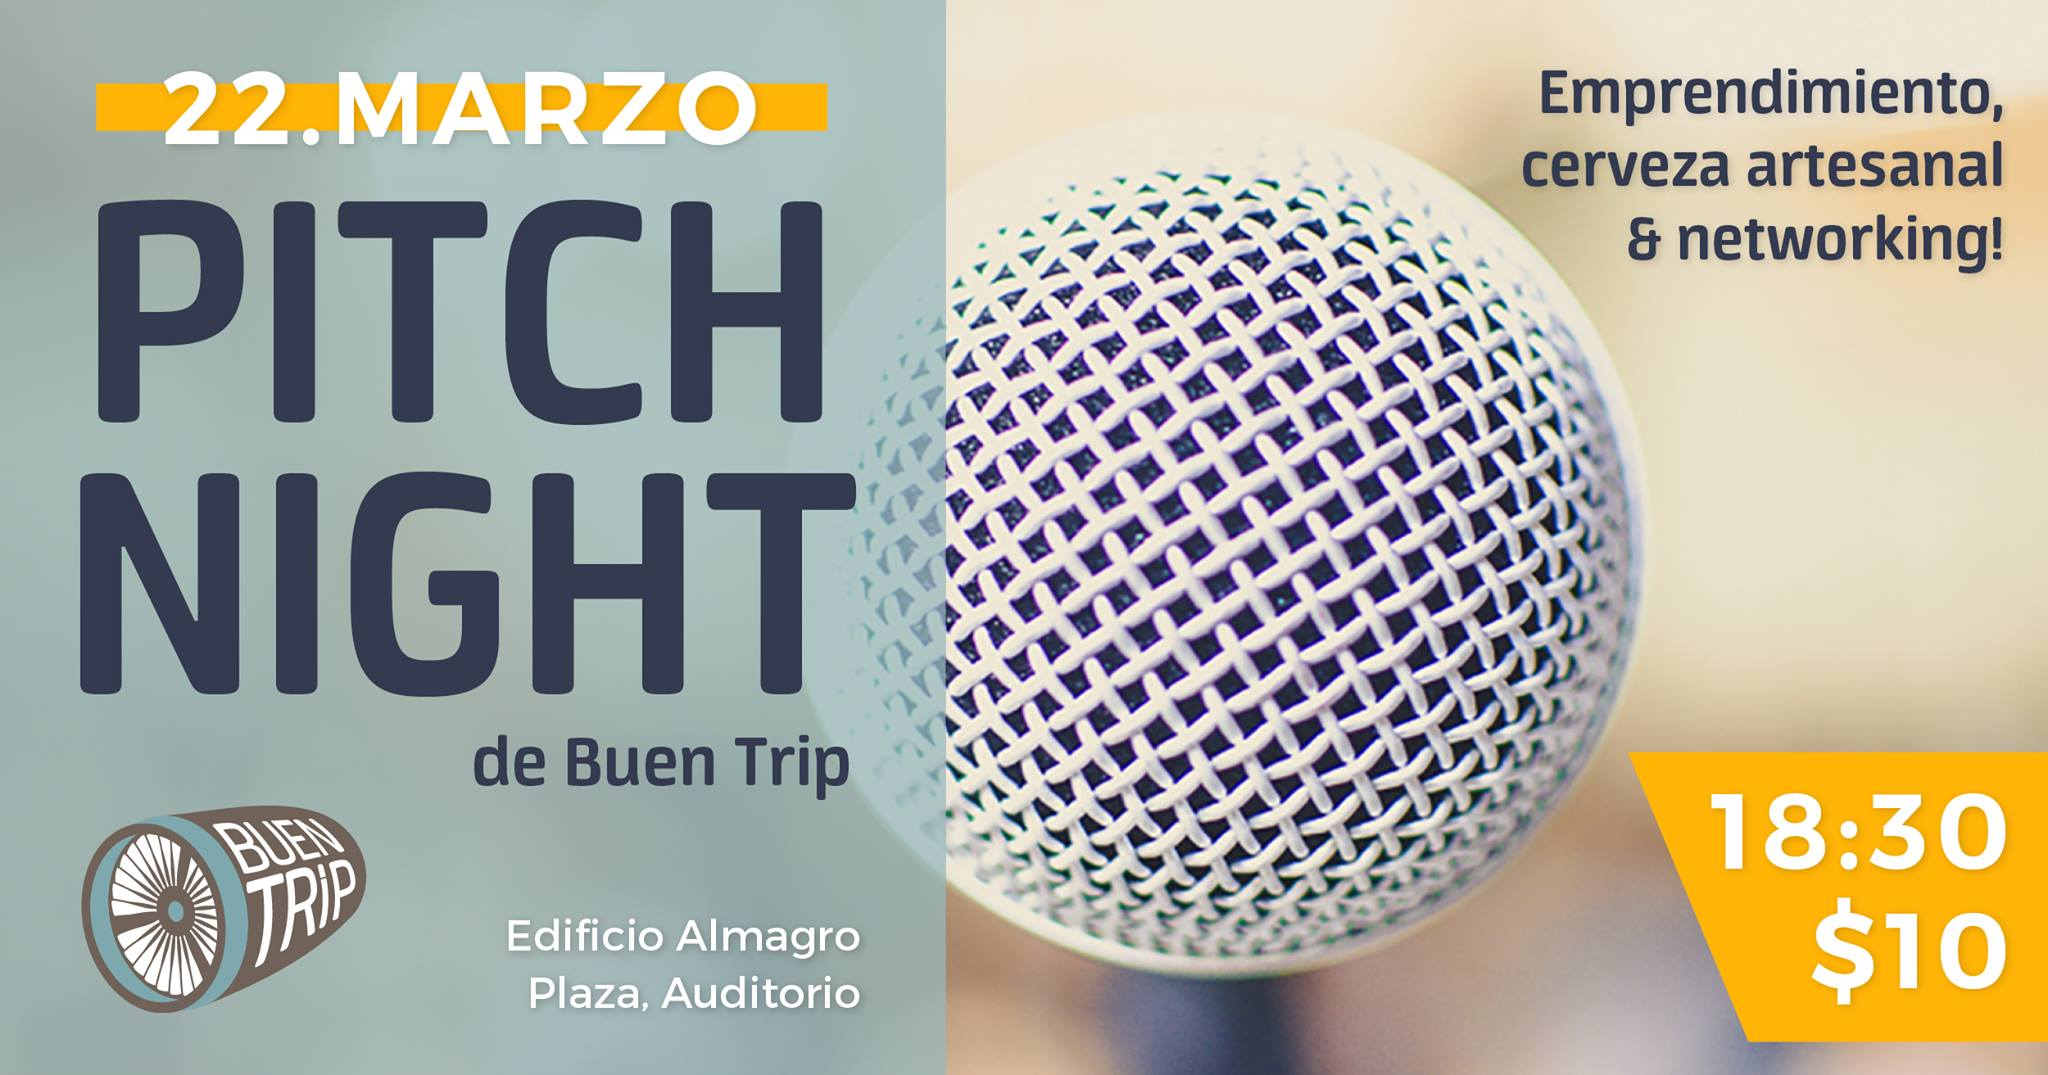 Pitch Night de Bue Trip Marzo 22, 2018